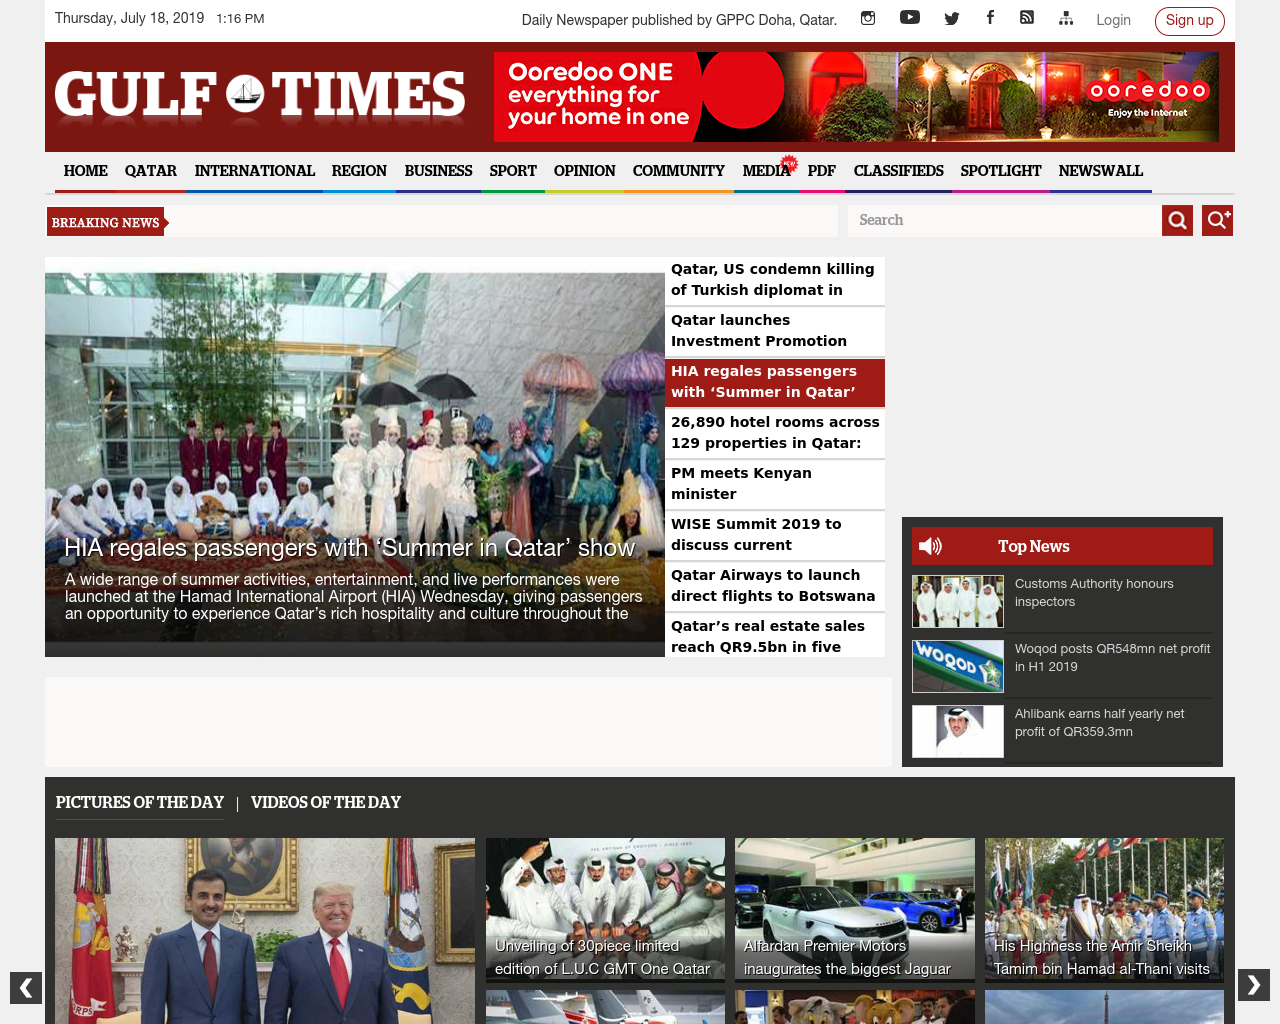 Gulf Times Advertising Mediakits, Reviews, Pricing, Traffic, Rate